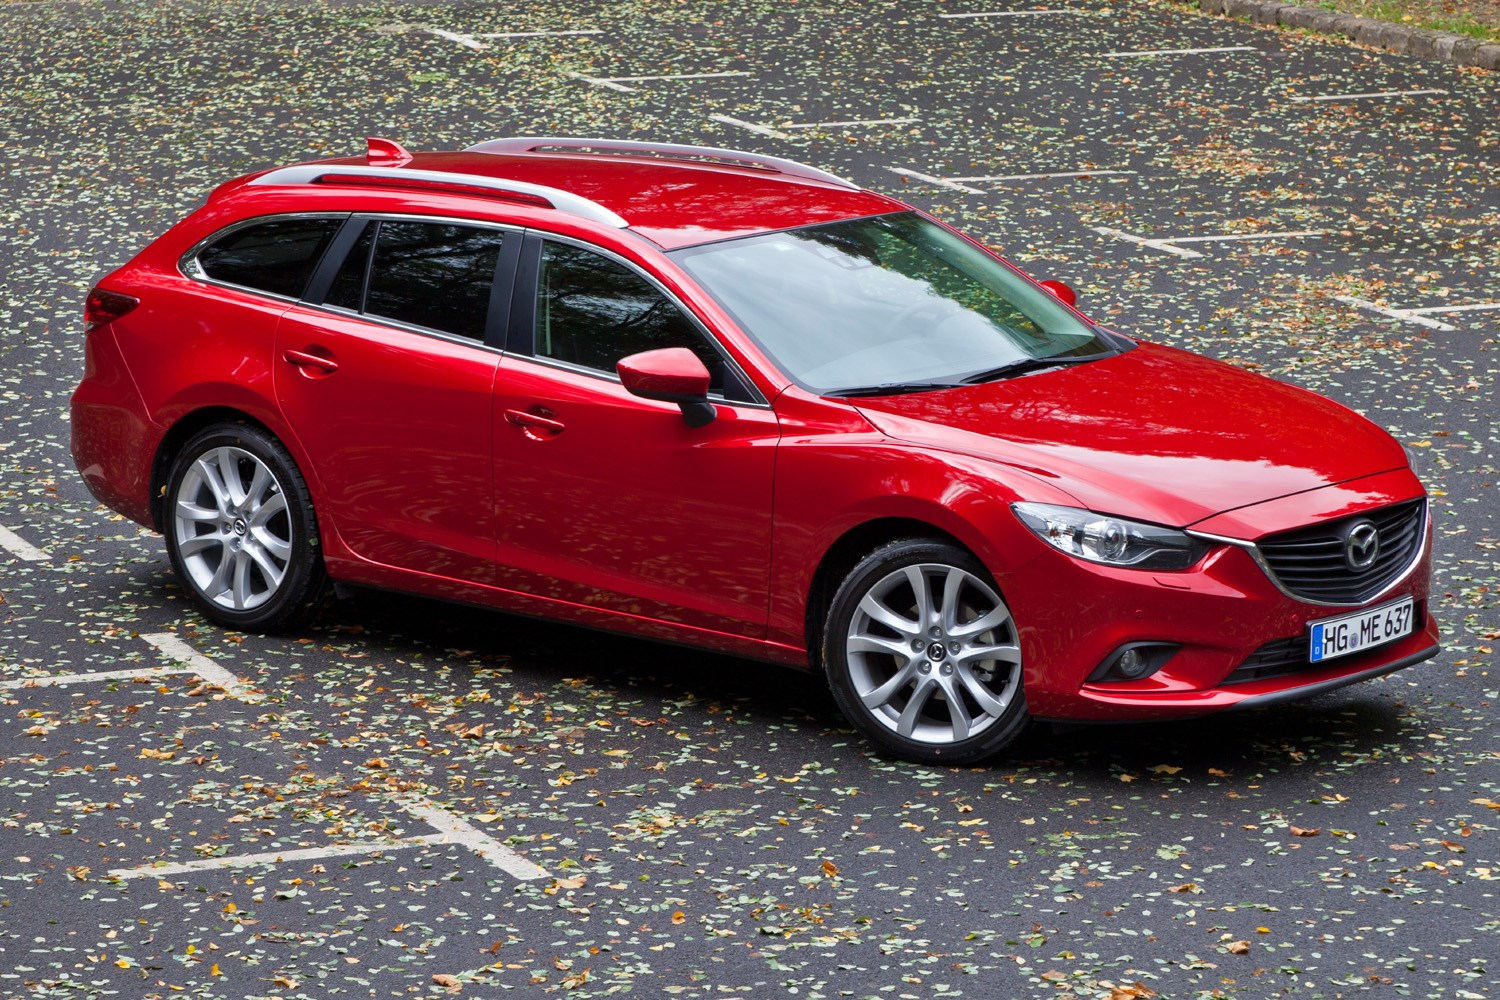 https://parkers-images.bauersecure.com/gallery-image/pagefiles/202906/static-exterior/1752x1168/mazda6_wagon_paris(94).jpg